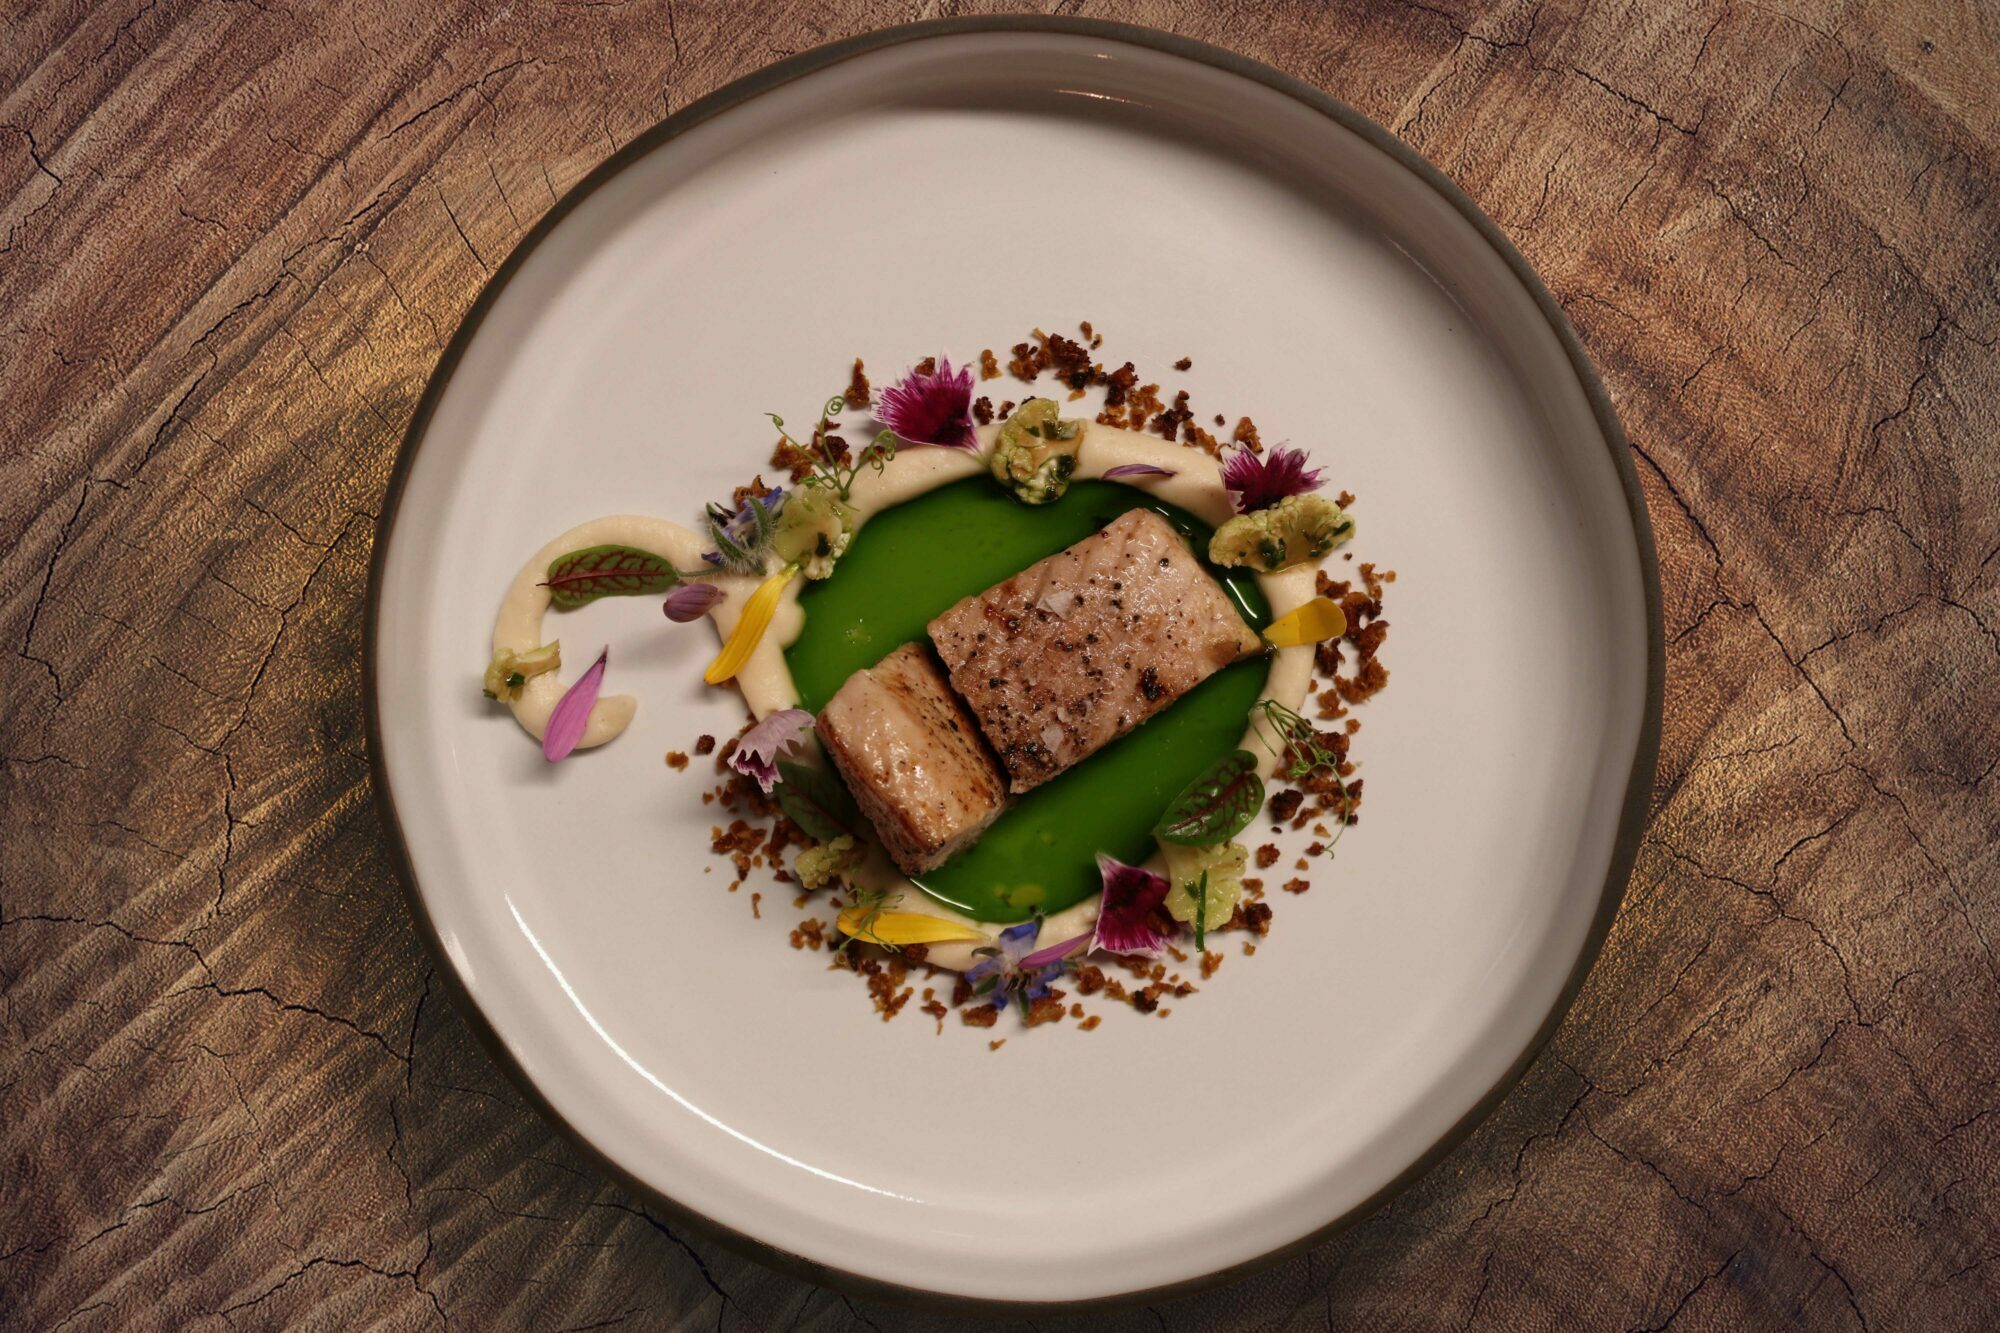 Salmon with cress oil and coliflower by Chef Jonas Messer